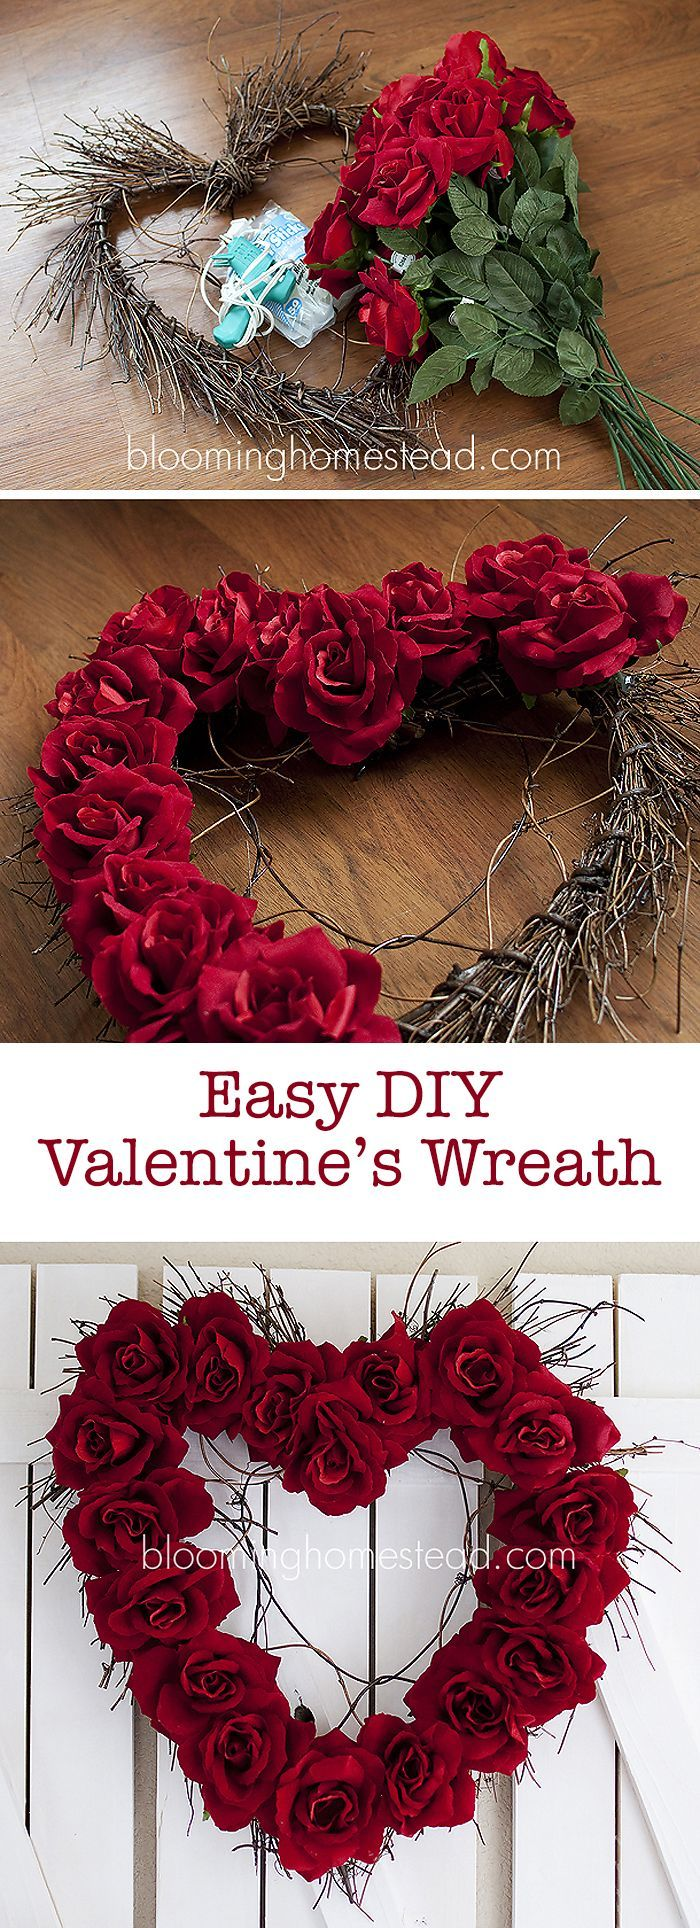 25+ unique Valentine decorations ideas on Pinterest | Diy ...